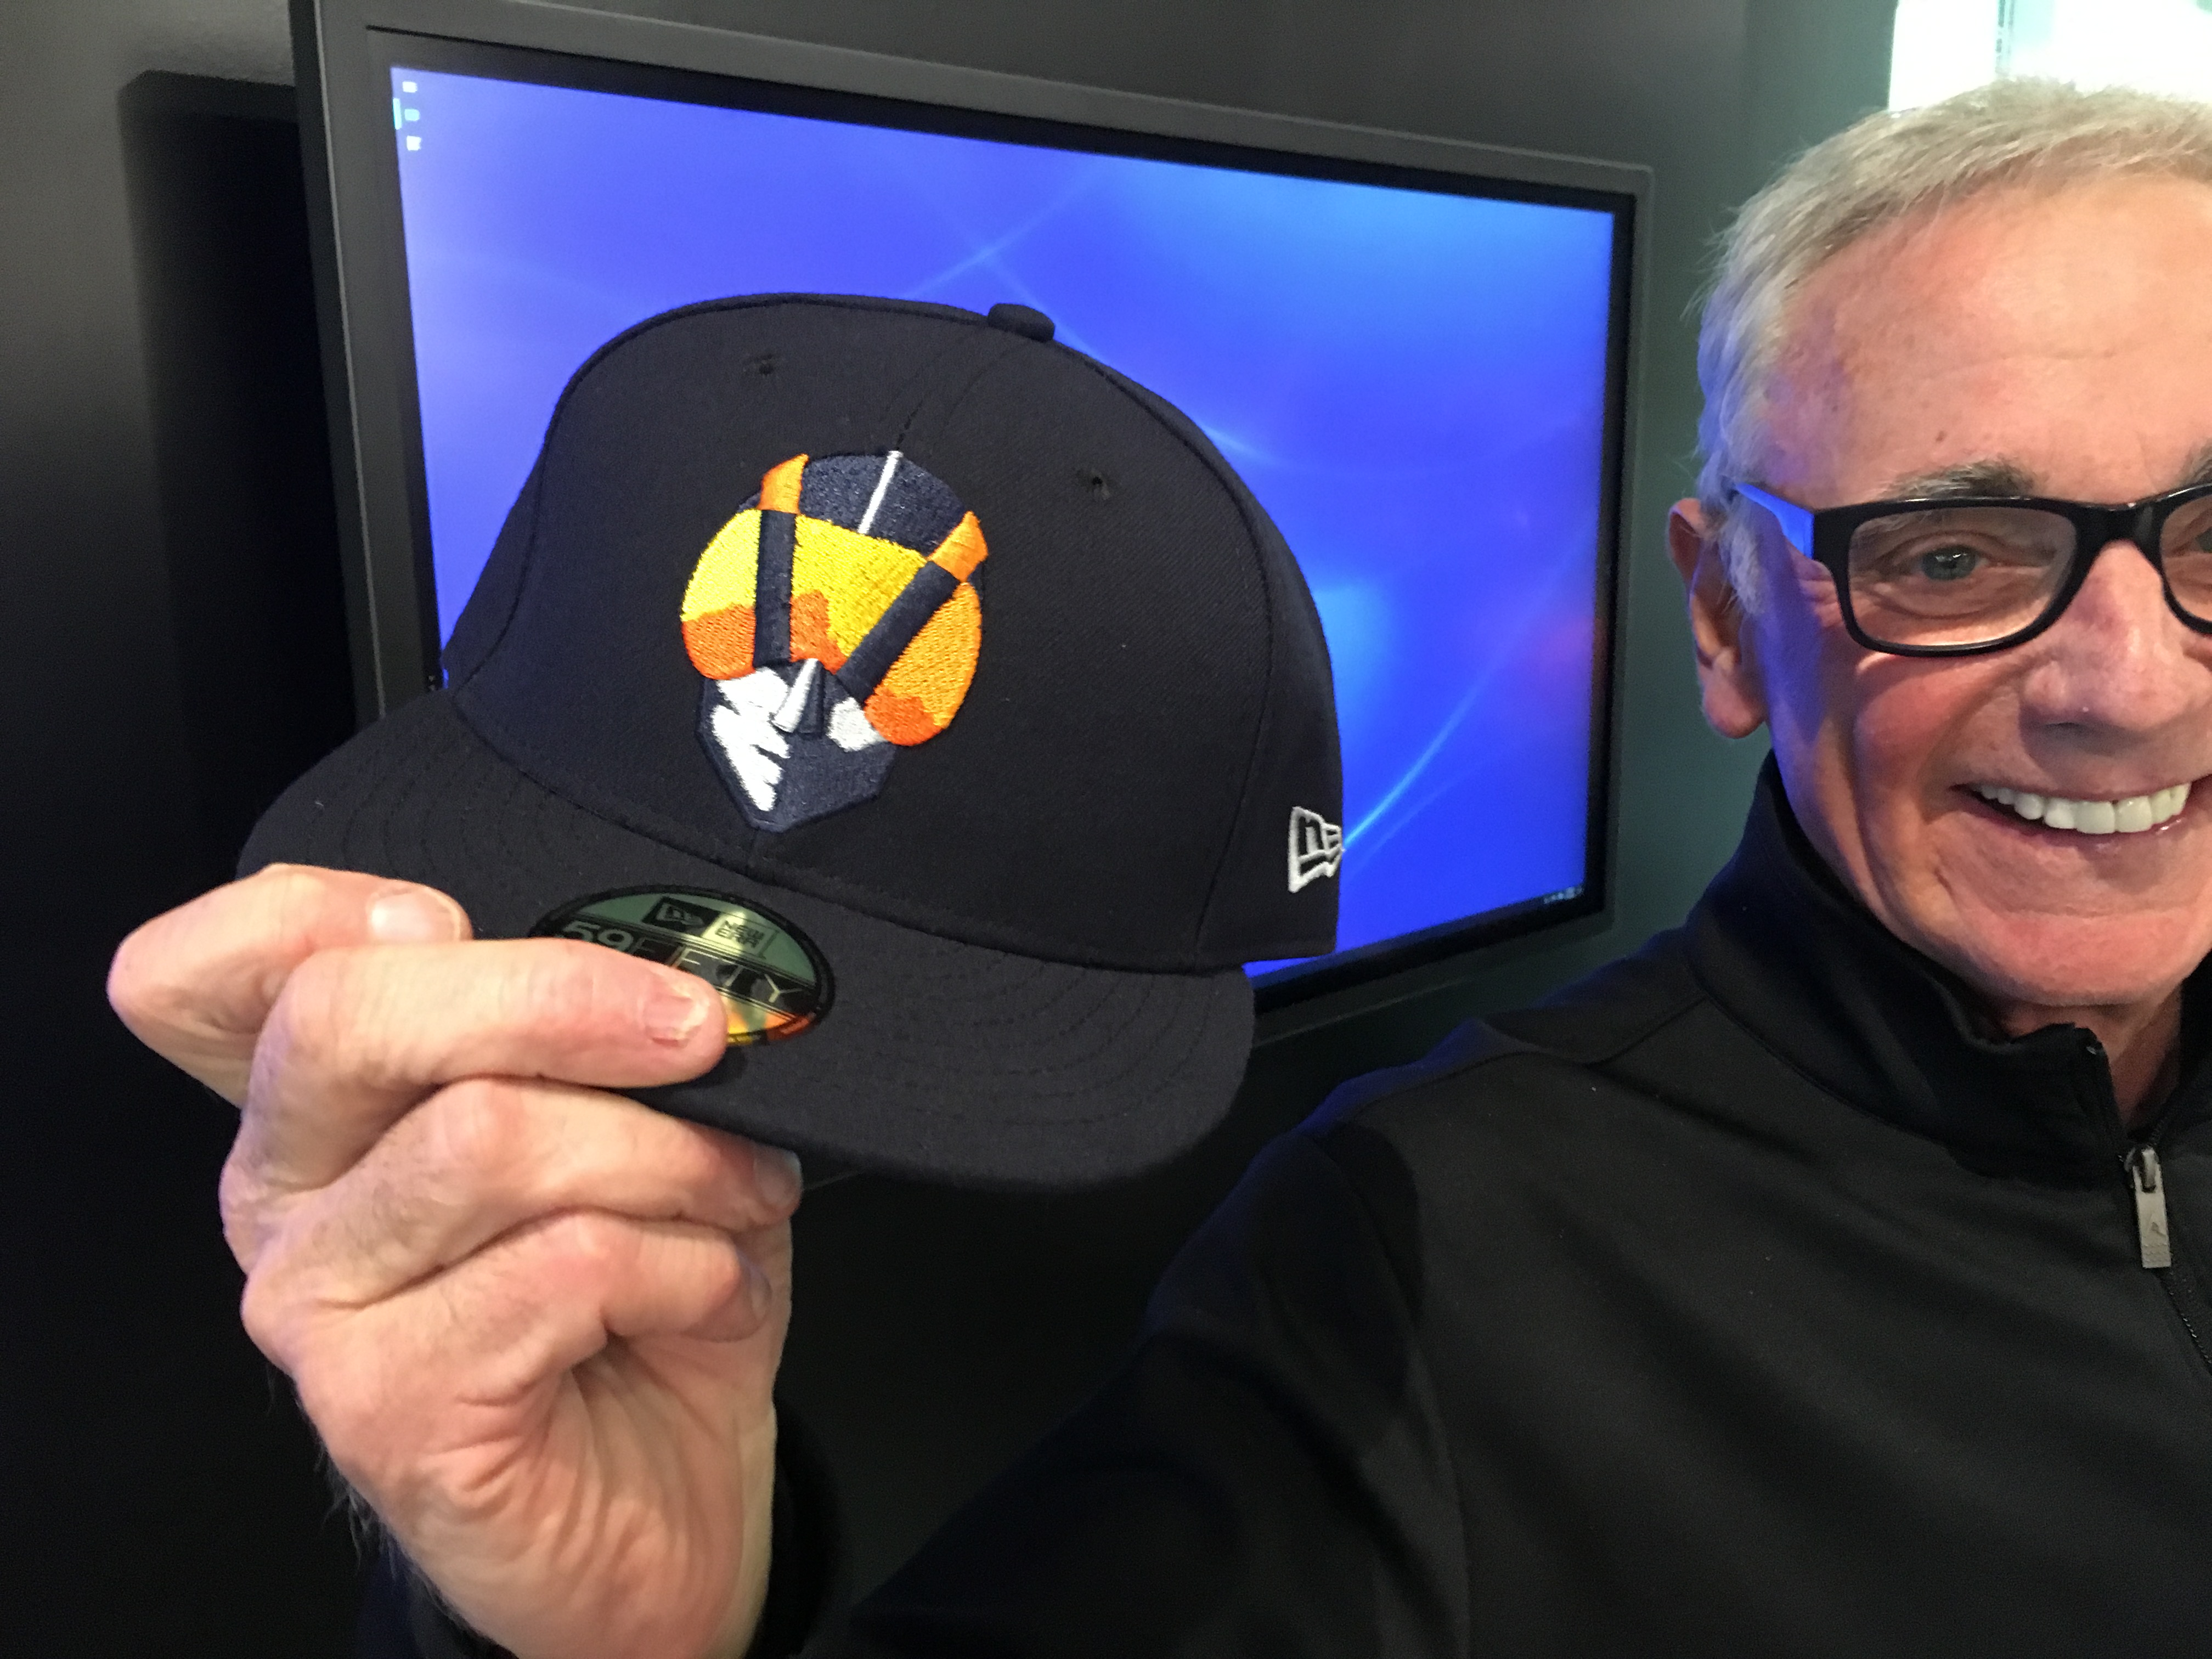 dc1508cd6 The Las Vegas Aviators' new logo -- hard to figure it out at first glance.